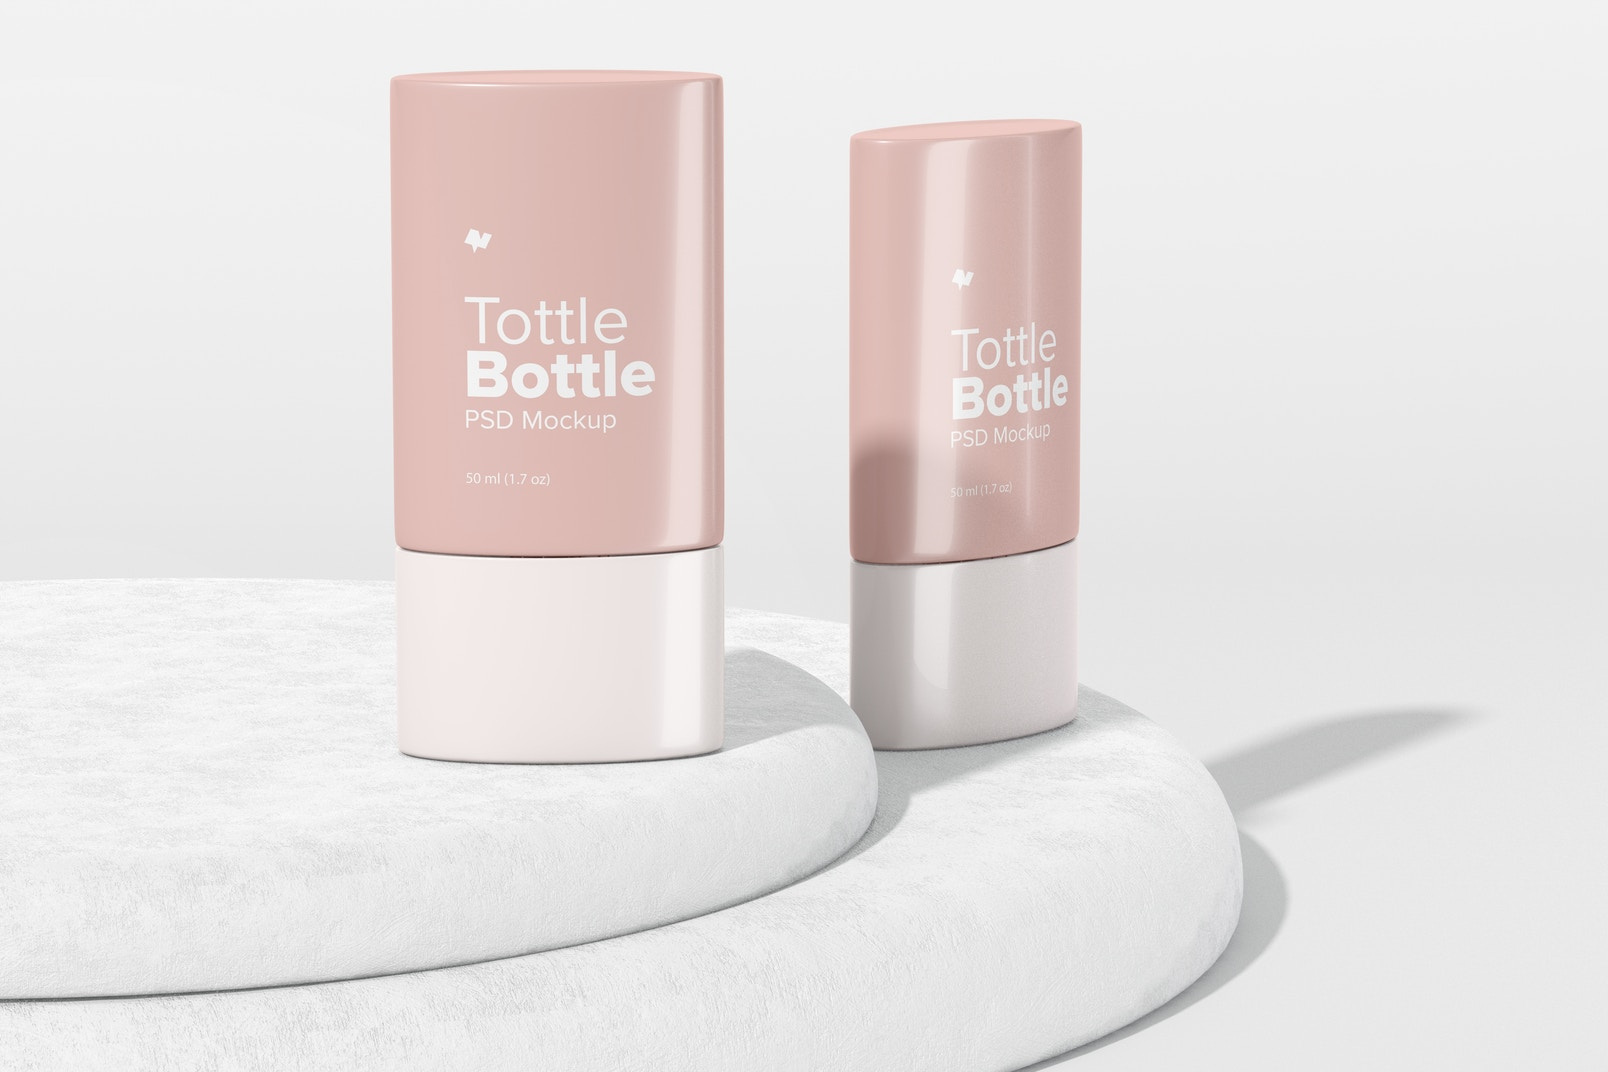 Tottle Bottles Mockup, Front and Side View